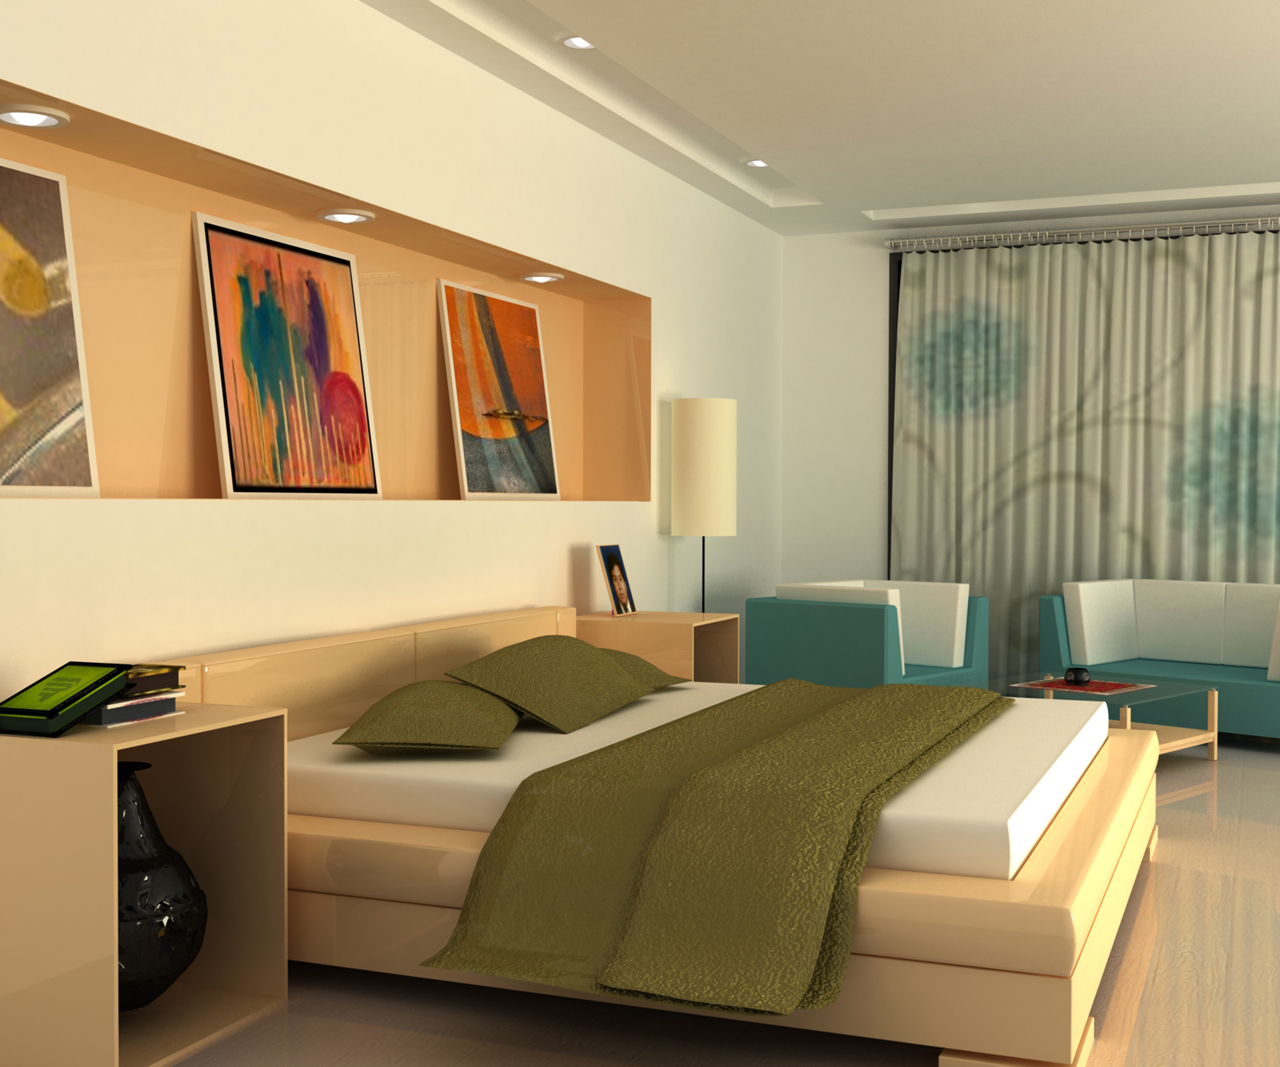 Interior design your bedroom online for Decorate your bedroom online